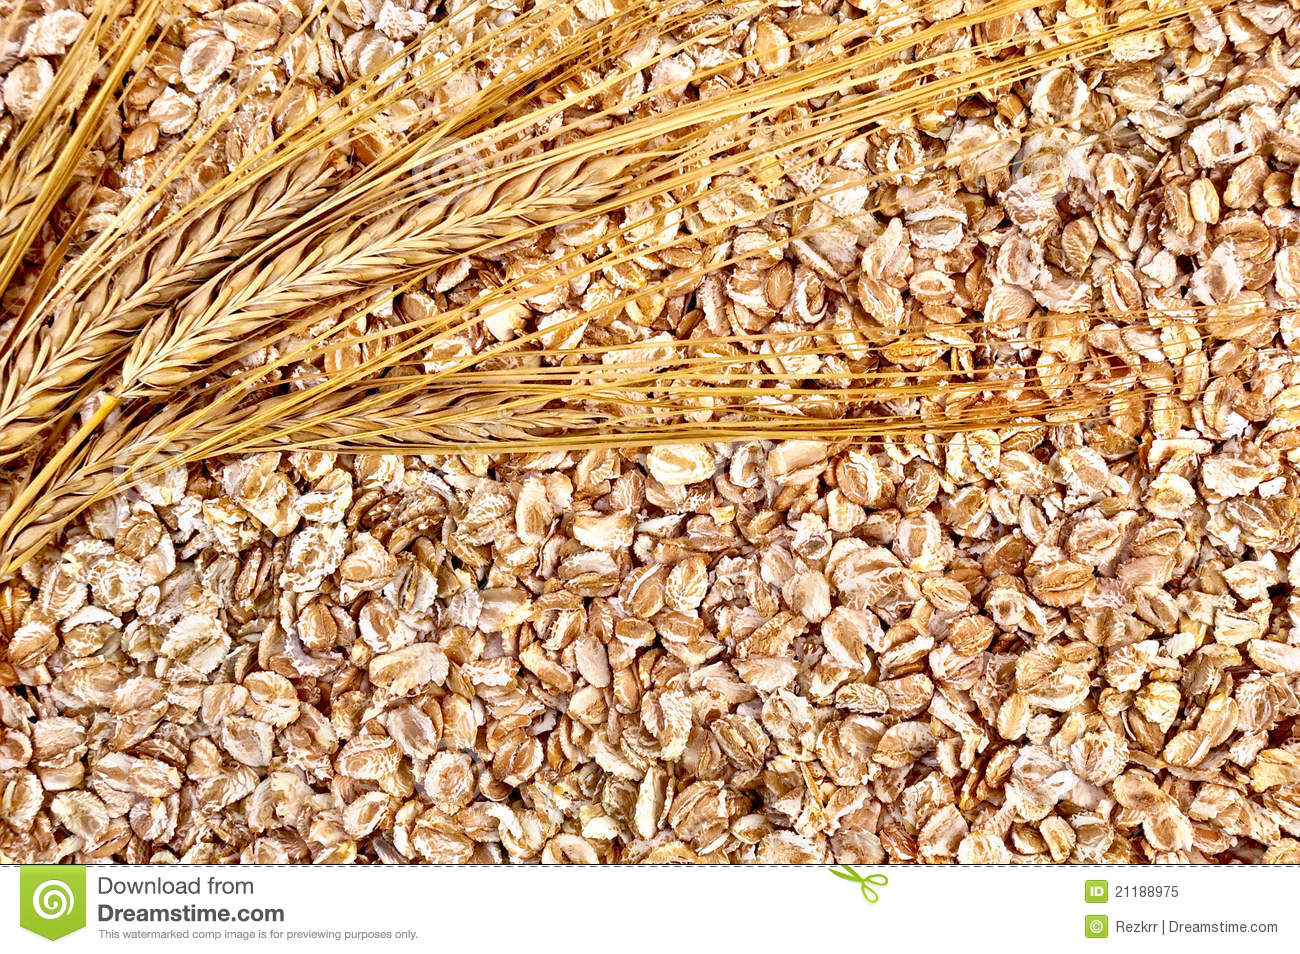 The texture of rye flakes with stalks of rye